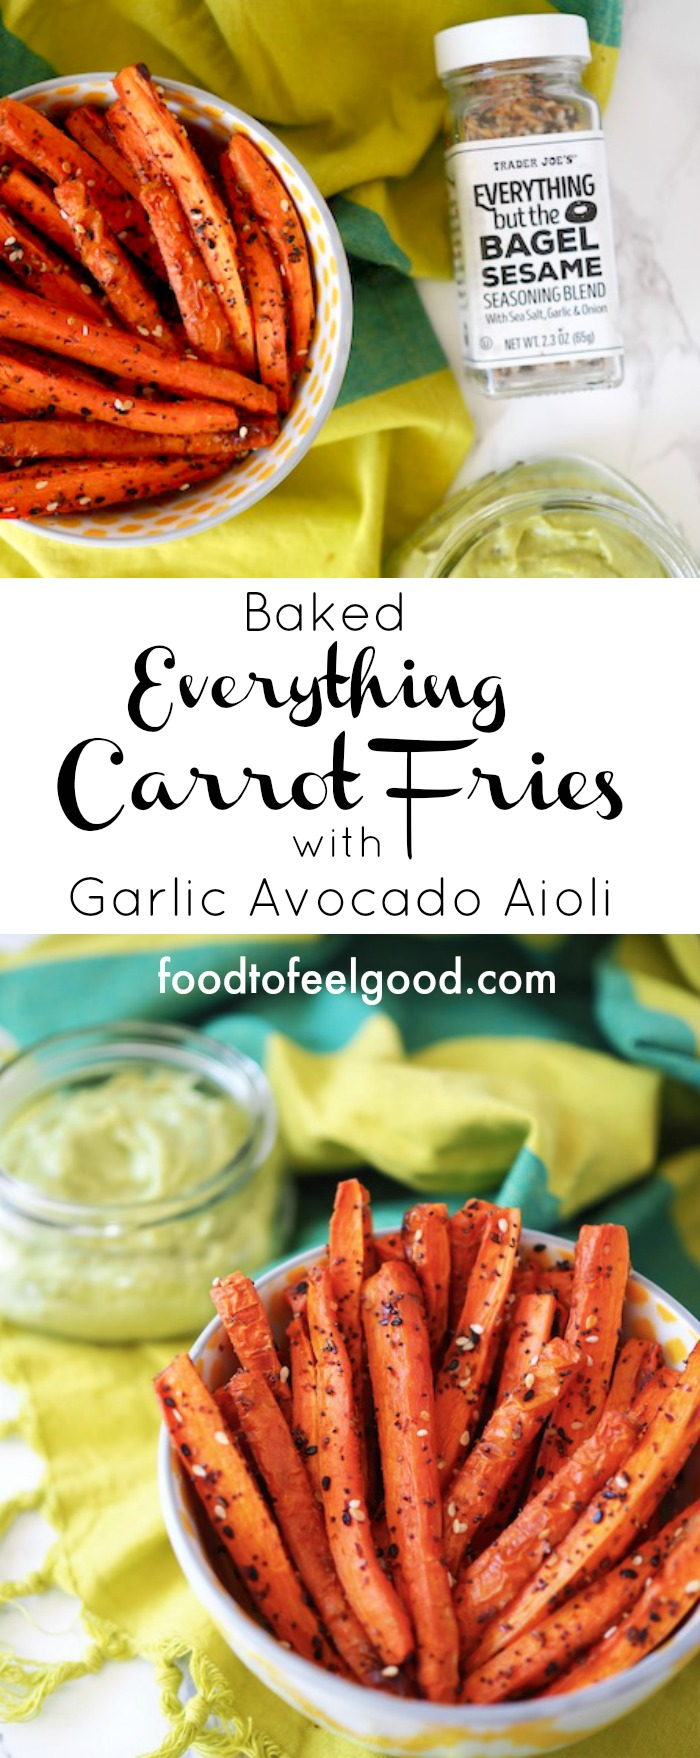 Baked Everything Carrot Fries with Garlic Avocado Aioli | These carrot fries are a super healthy alternative to regular white potatoes fried in yucky oils. Made with avocado oil and Trader Joe's Everything but the Bagel Sesame Seasoning! The Garlic Avocado Aioli is an easy dip that goes amazing with any roasted veggies, grilled chicken, or even tacos. #glutenfree #paleorecipes #everythingbagel #whole30 #veganrecipes #carrotfries #avocadodip